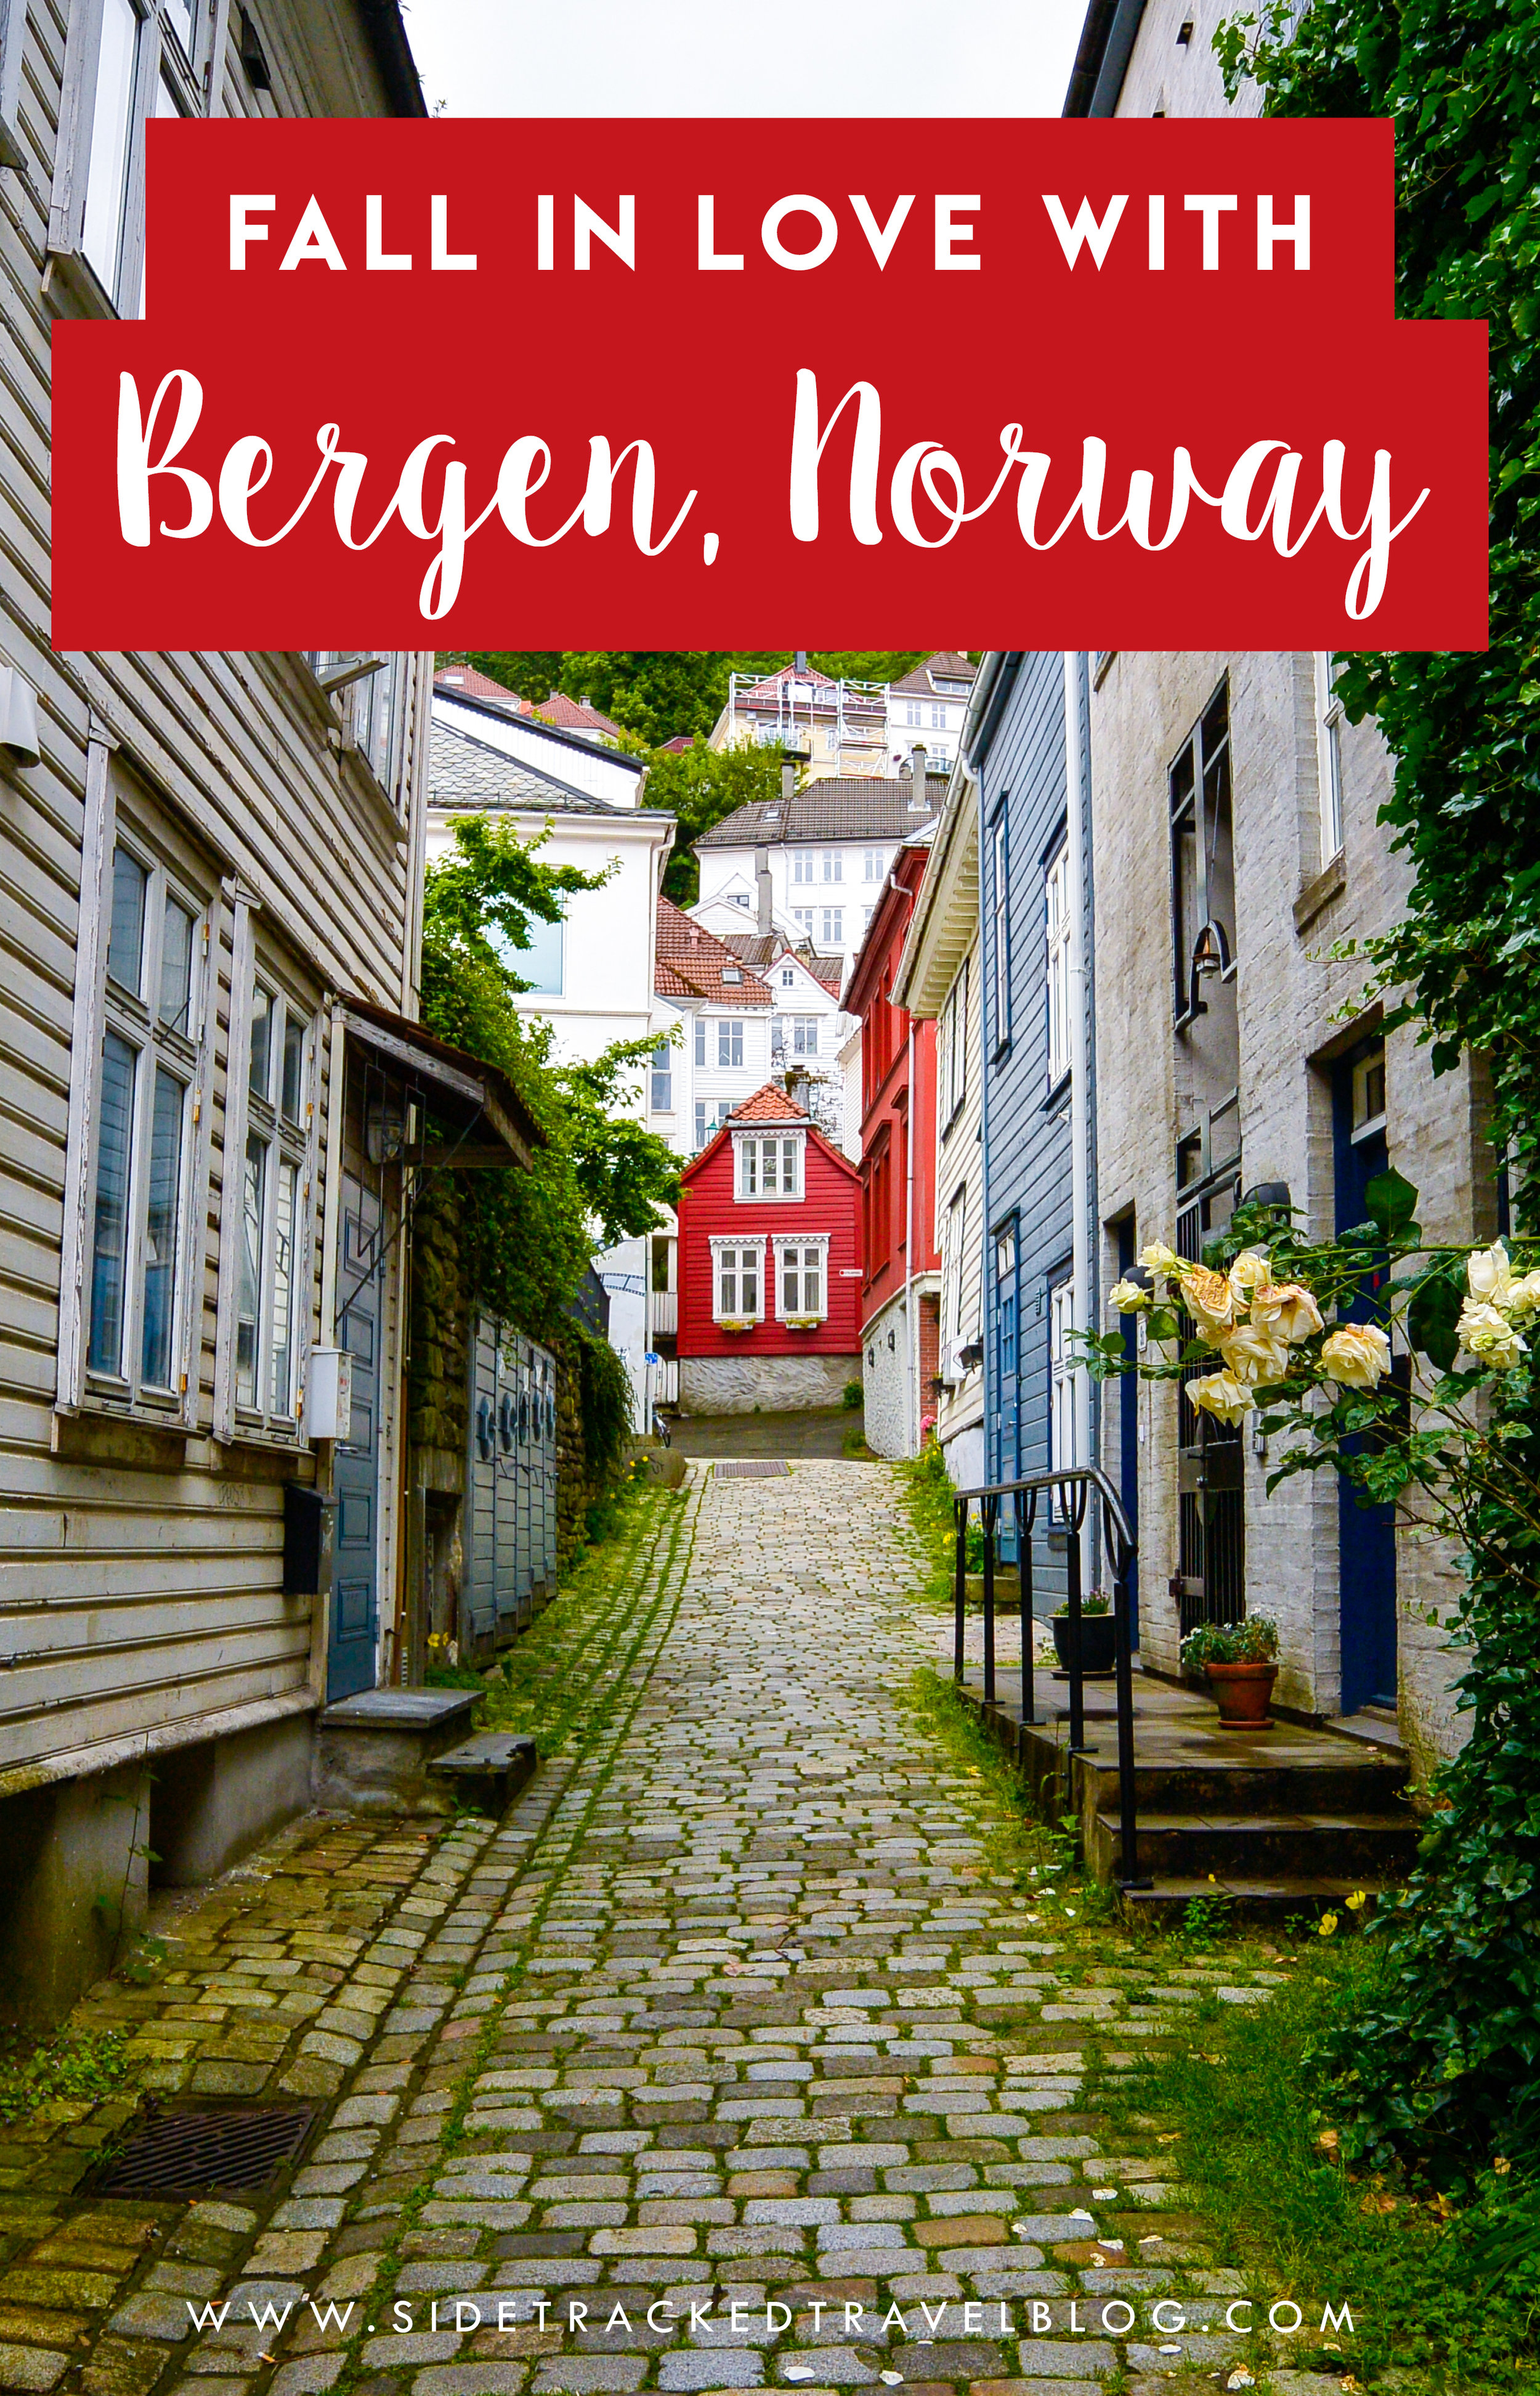 Never Fall In Love Wallpaper Fall In Love With Bergen Norway Sidetracked Travel Blog